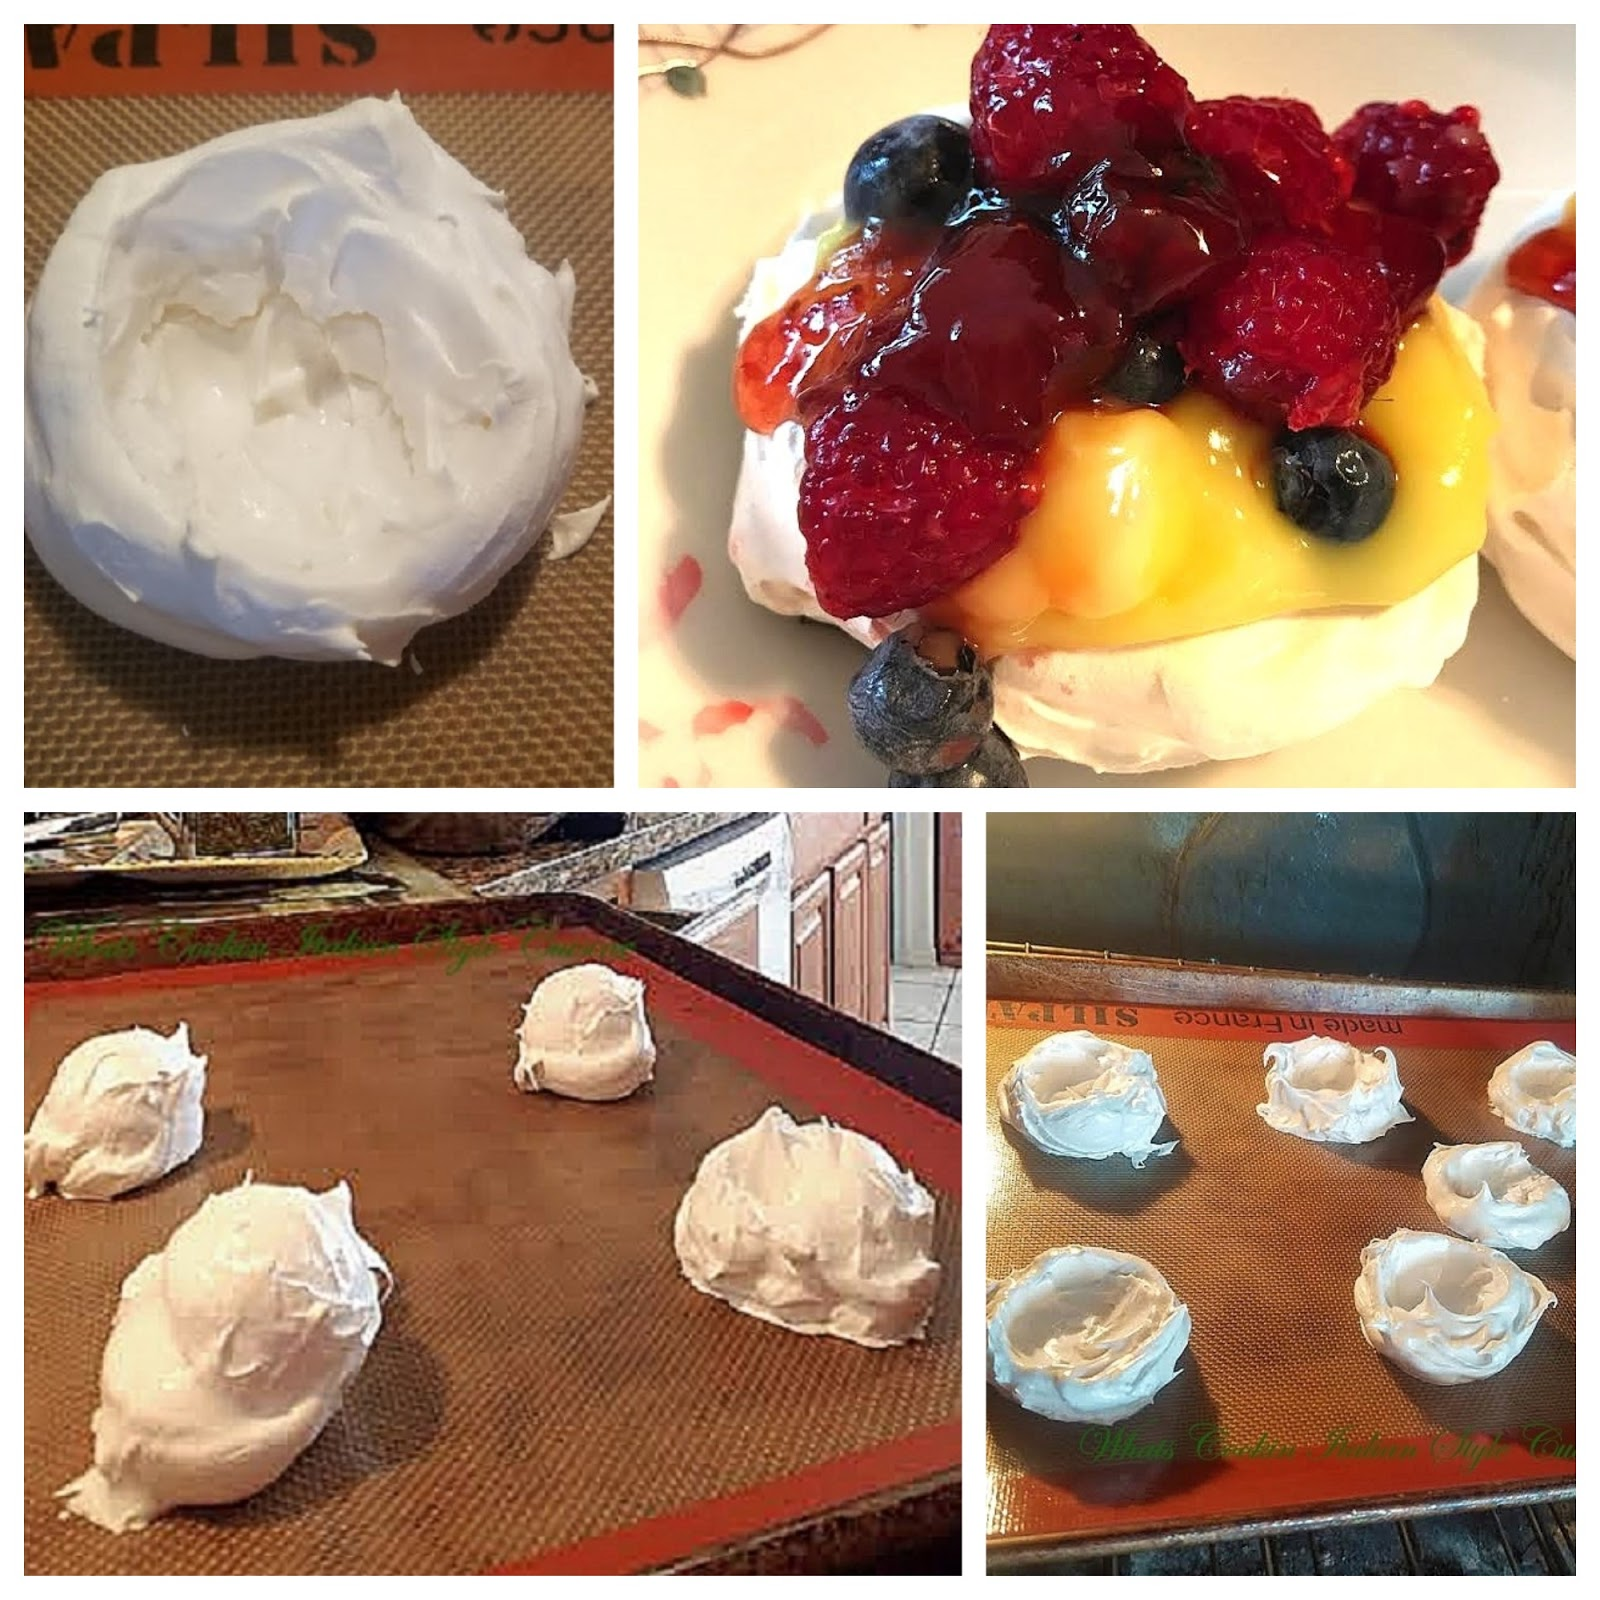 Meringue Cups are a dessert cup filled with delicious fresh fruits and an elegant dessert love in calories to serve guests.meringue whipped into cups, baked and ready to fill with frresh fruit or lemon curd filling. These are on silpat mat to keep from sticking